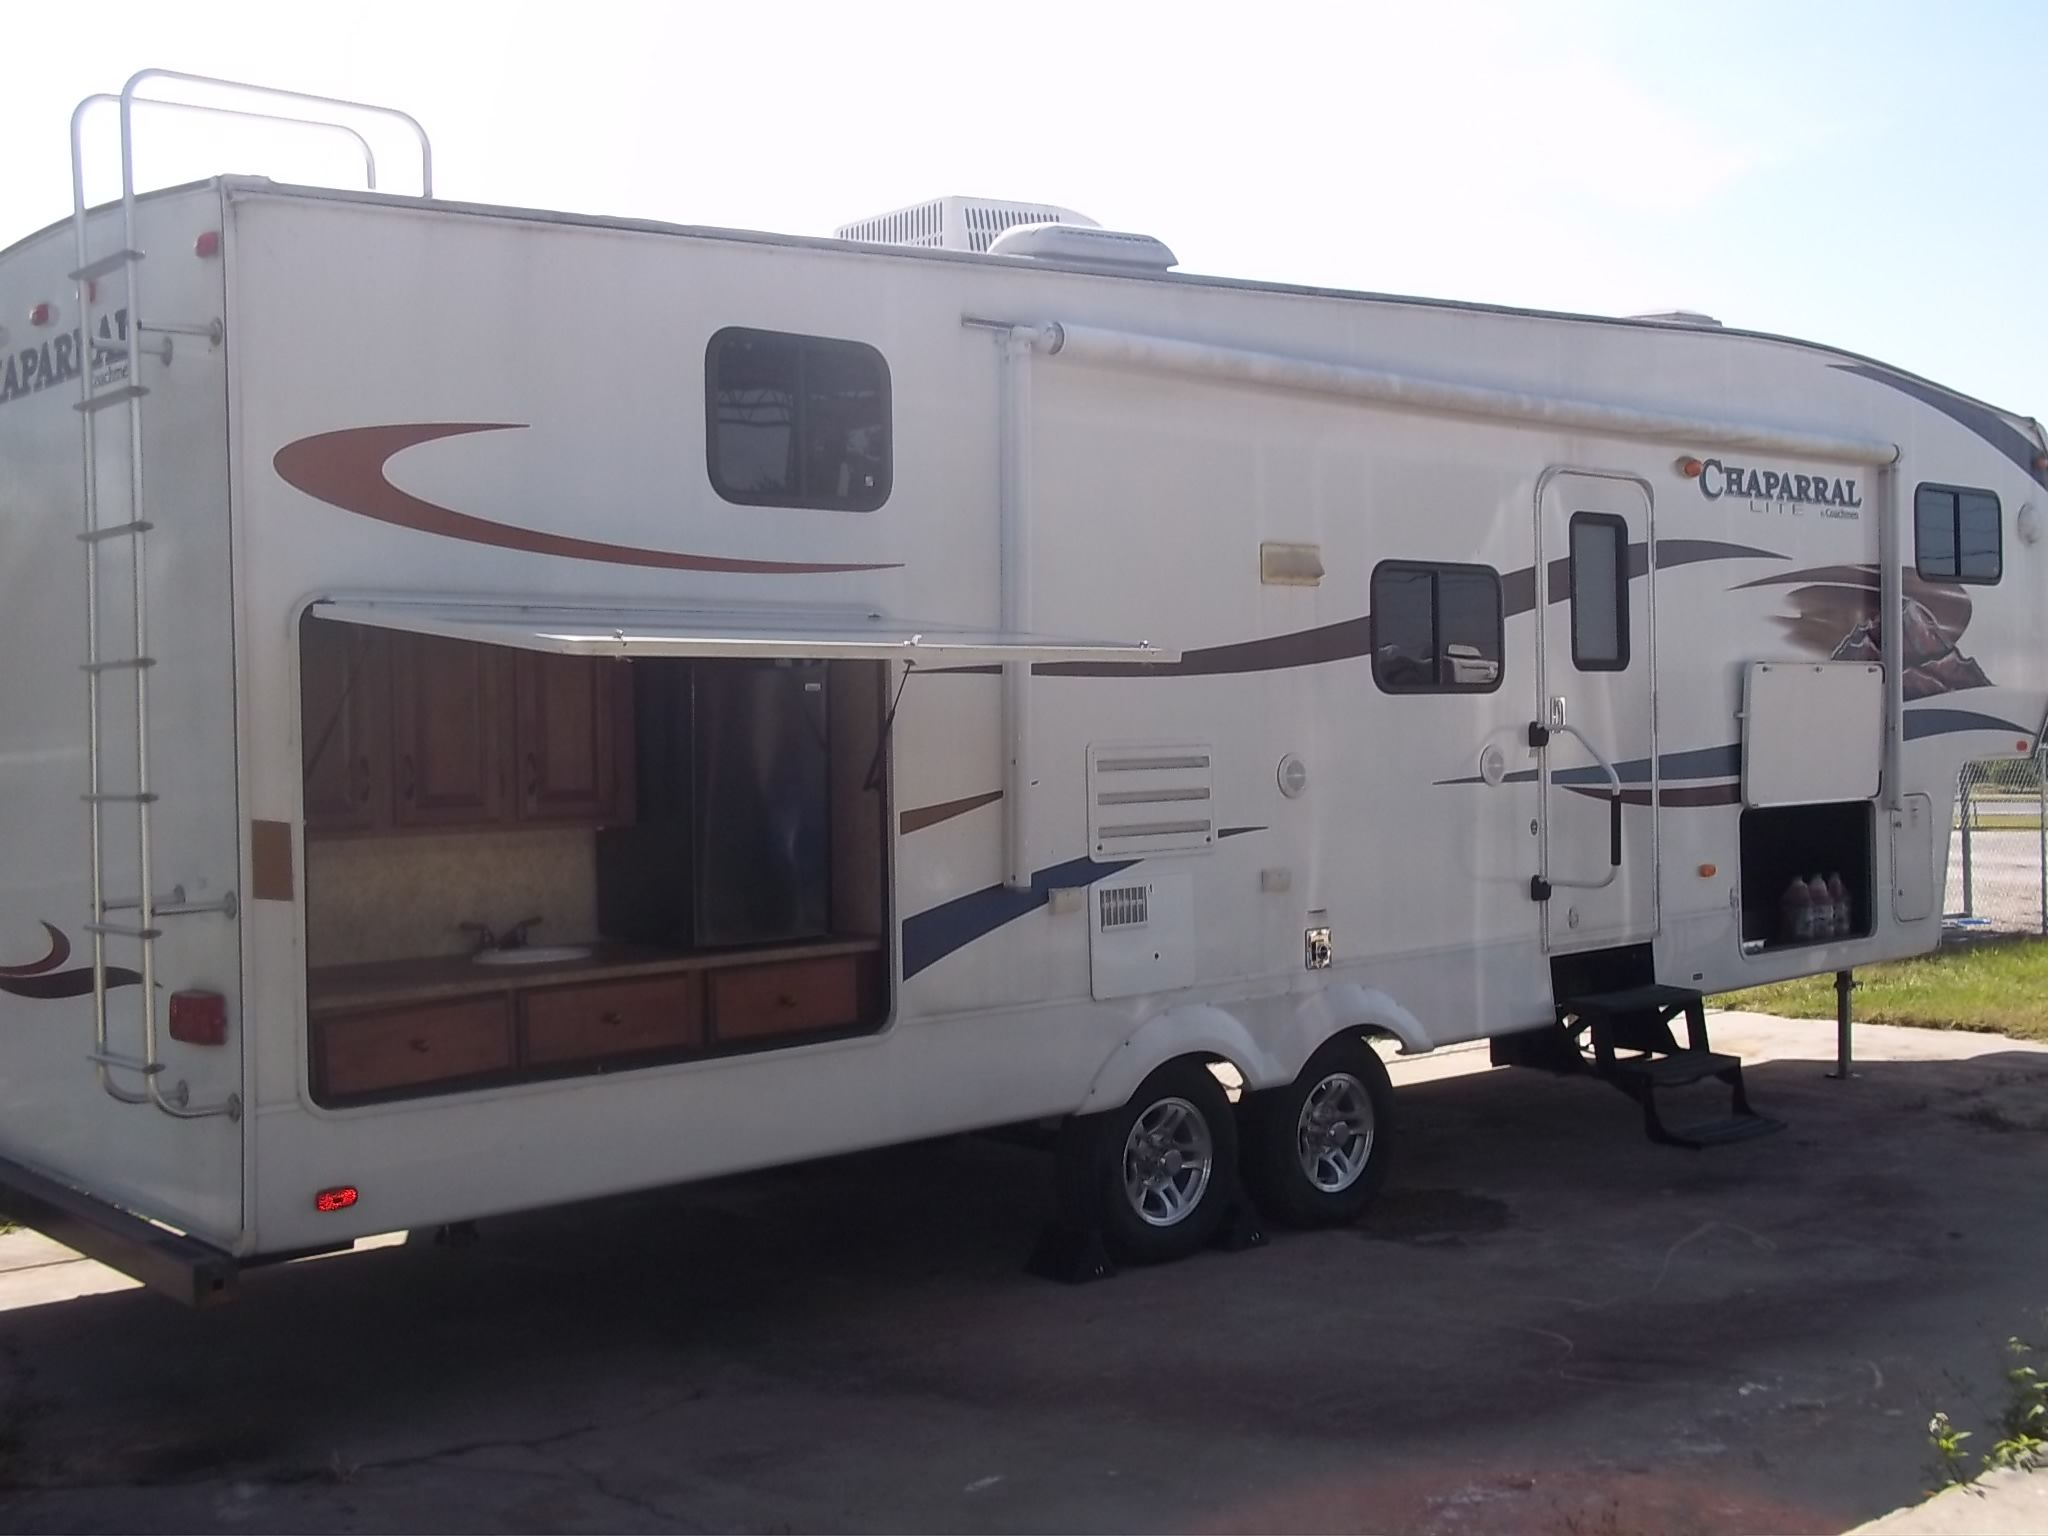 2011 Coachmen Chaparral 269BHS 5th Wheel RV For Sale By Owner Tampa Like New 14 Slide Out 3 Bunk Room External Kitchen Fridge Sink And Grill Hook Up